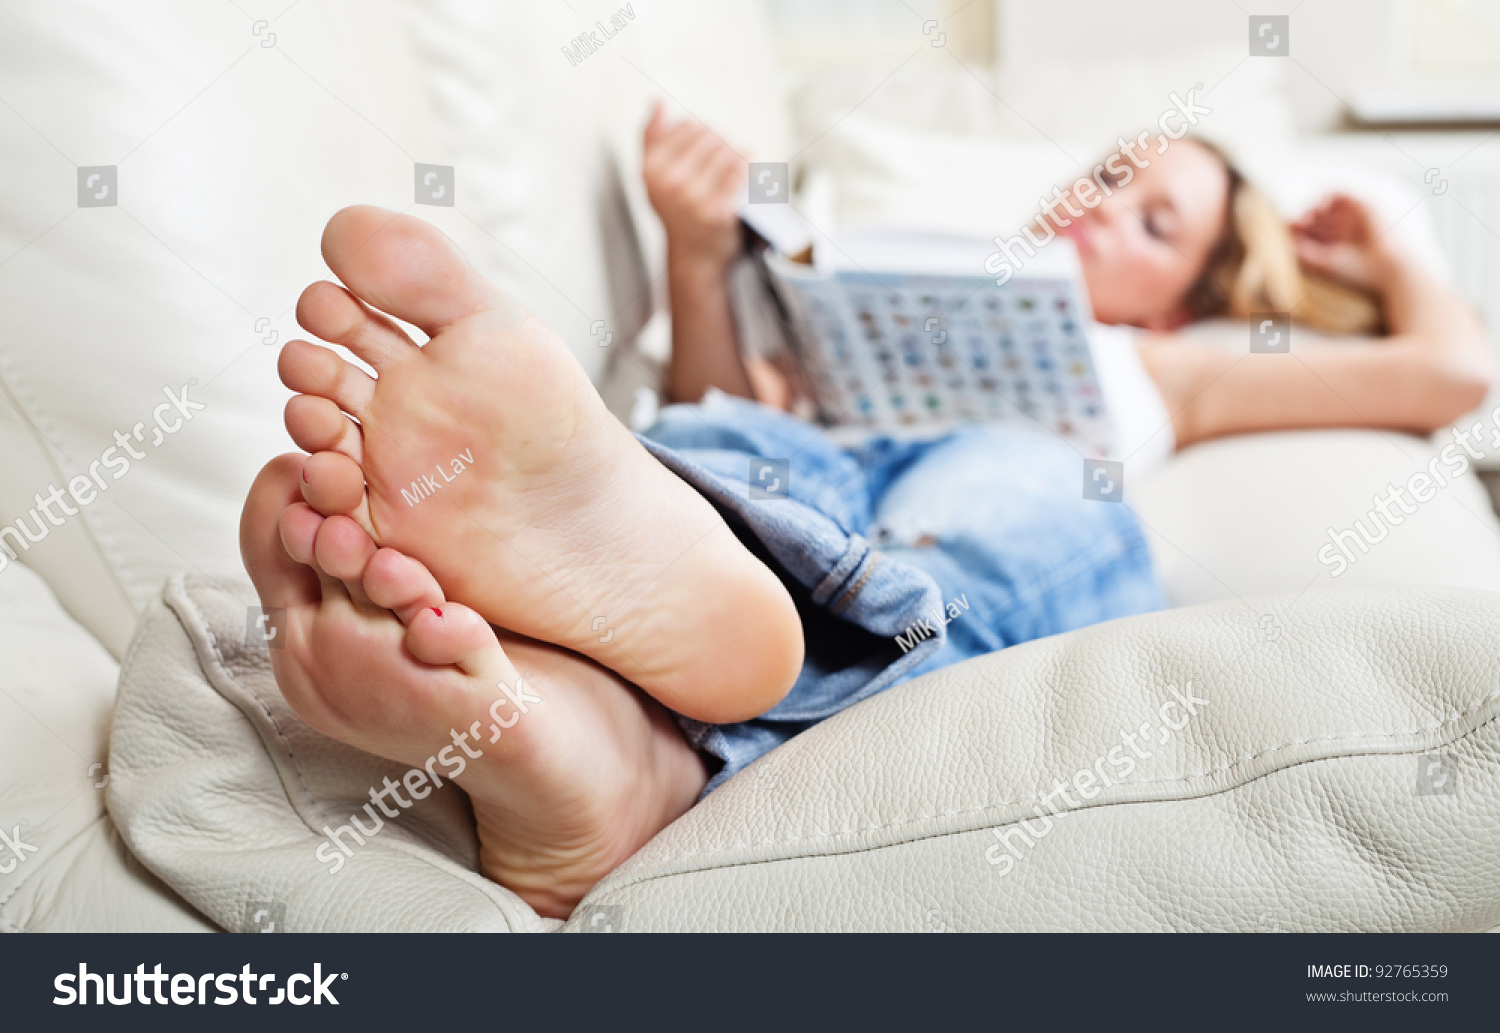 Barefoot Young Woman Lying On Sofa And Reading Book Shallow Depth Of Field Focus